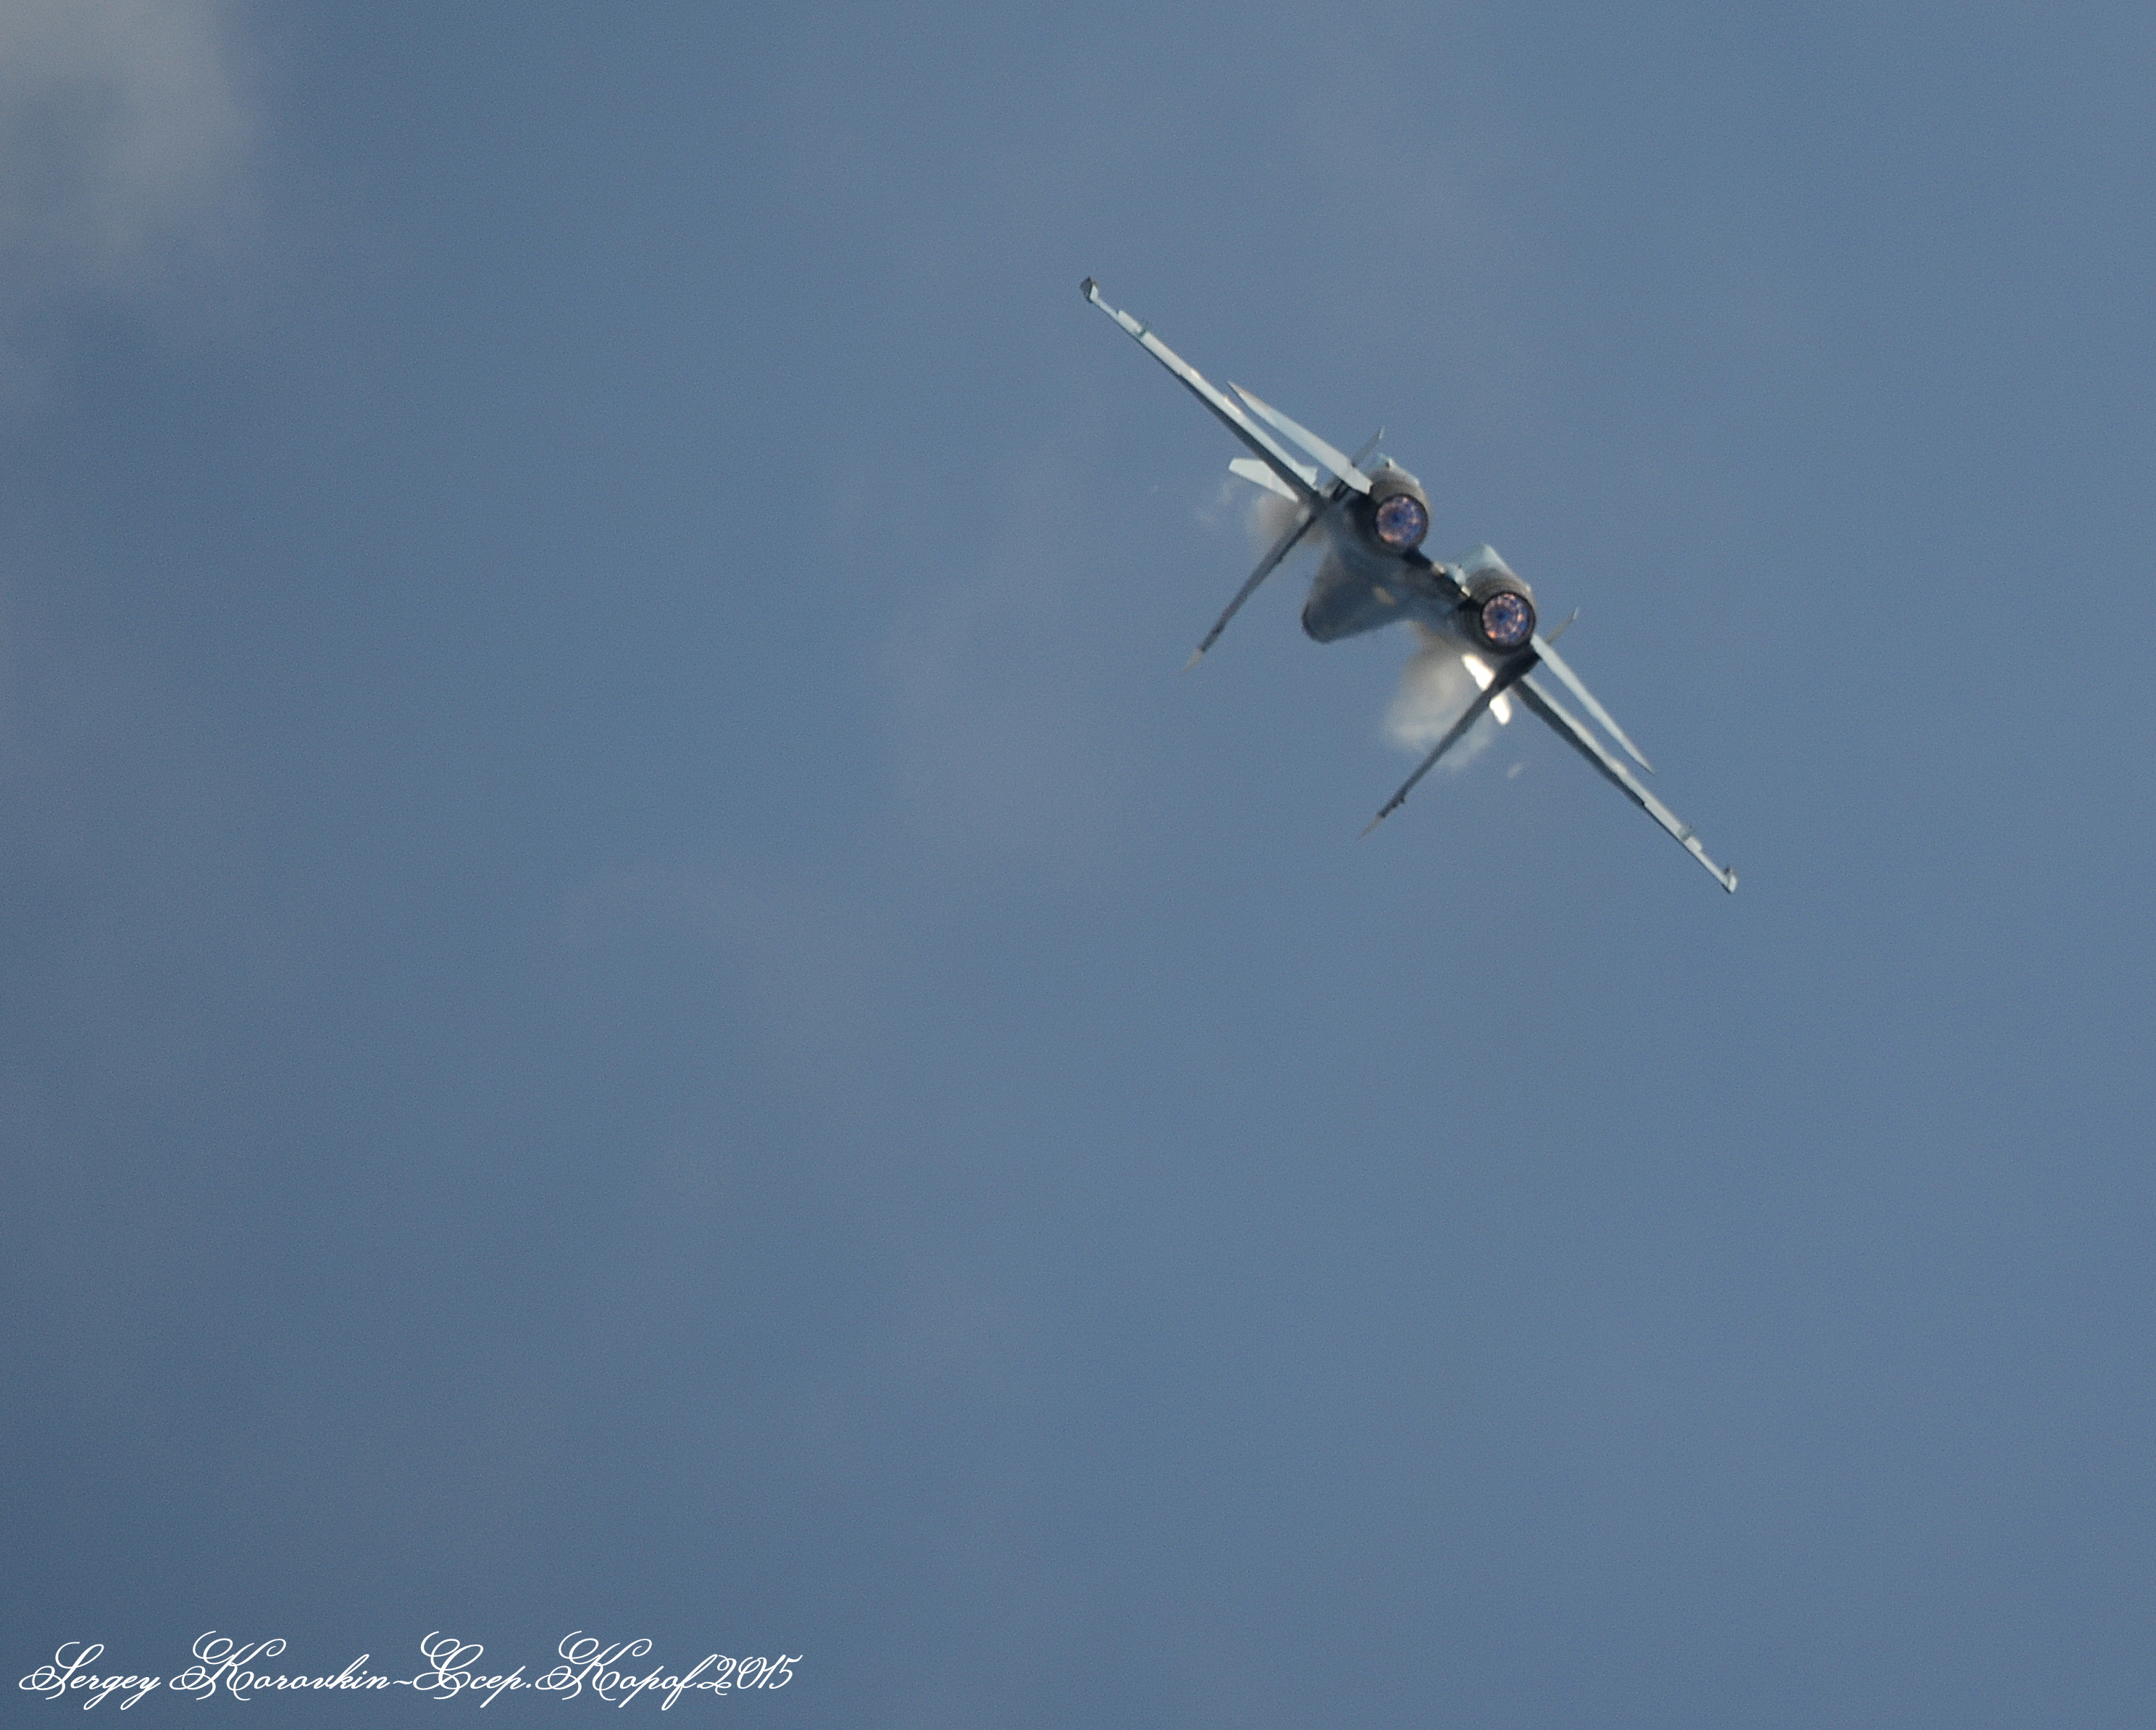 MAKS-2015 Air Show: Photos and Discussion - Page 3 0_17bdb0_a5f992e1_orig